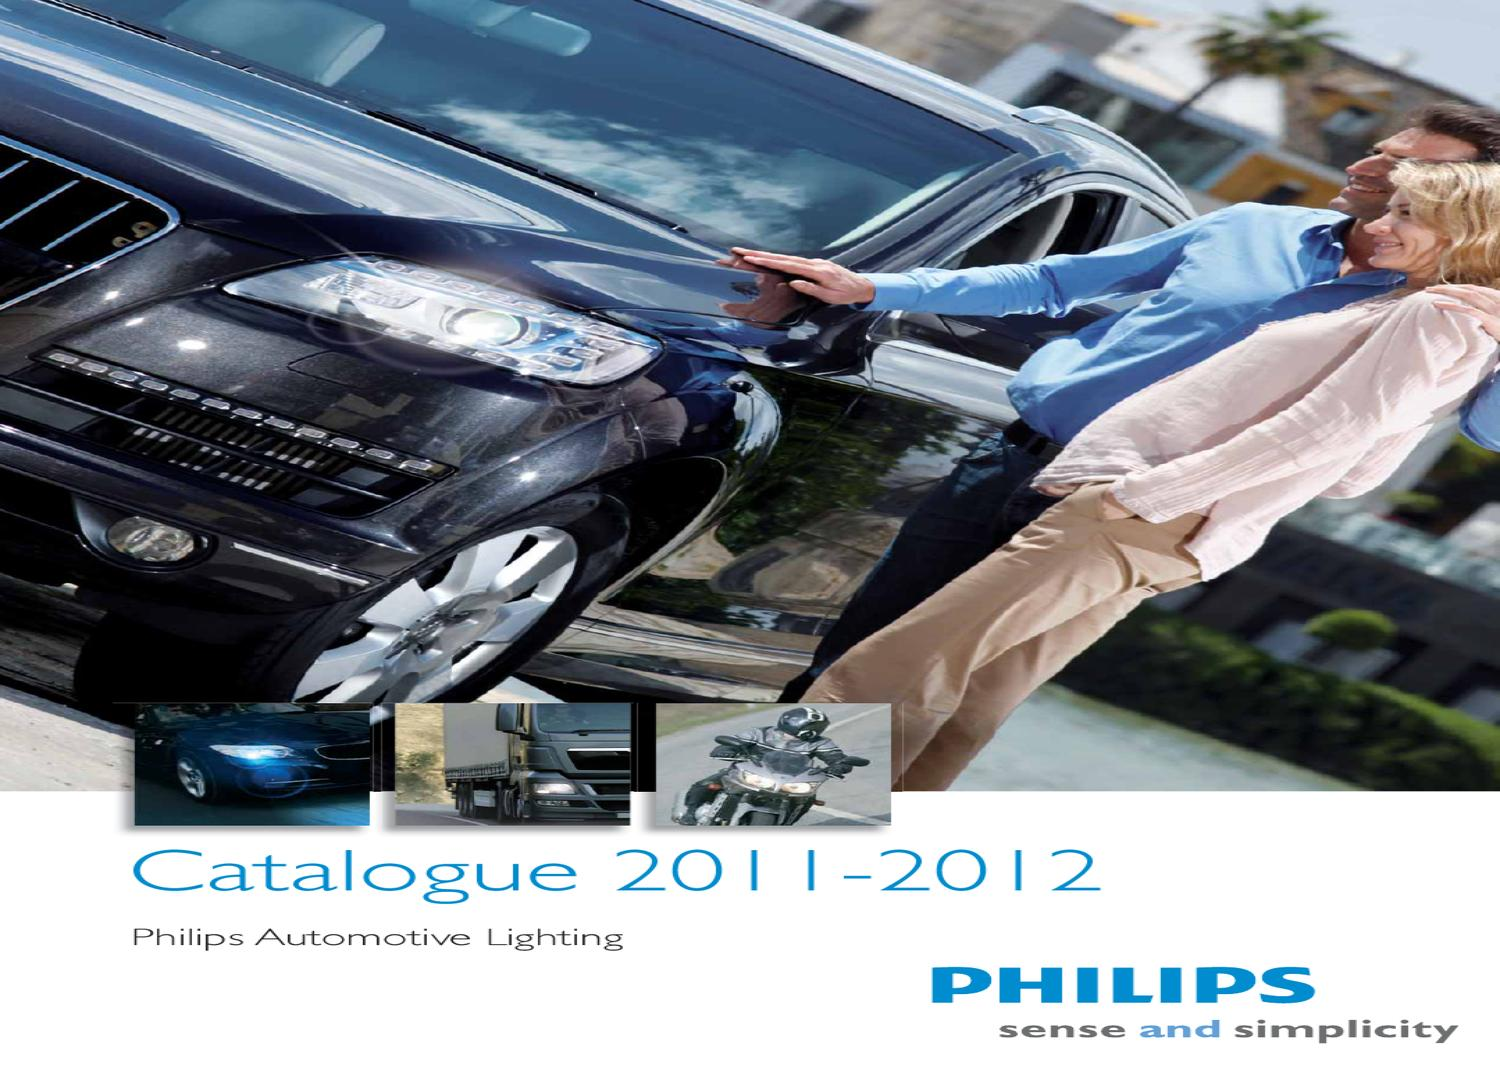 philips automotive lighting catalogue 2011 2012 eng by. Black Bedroom Furniture Sets. Home Design Ideas